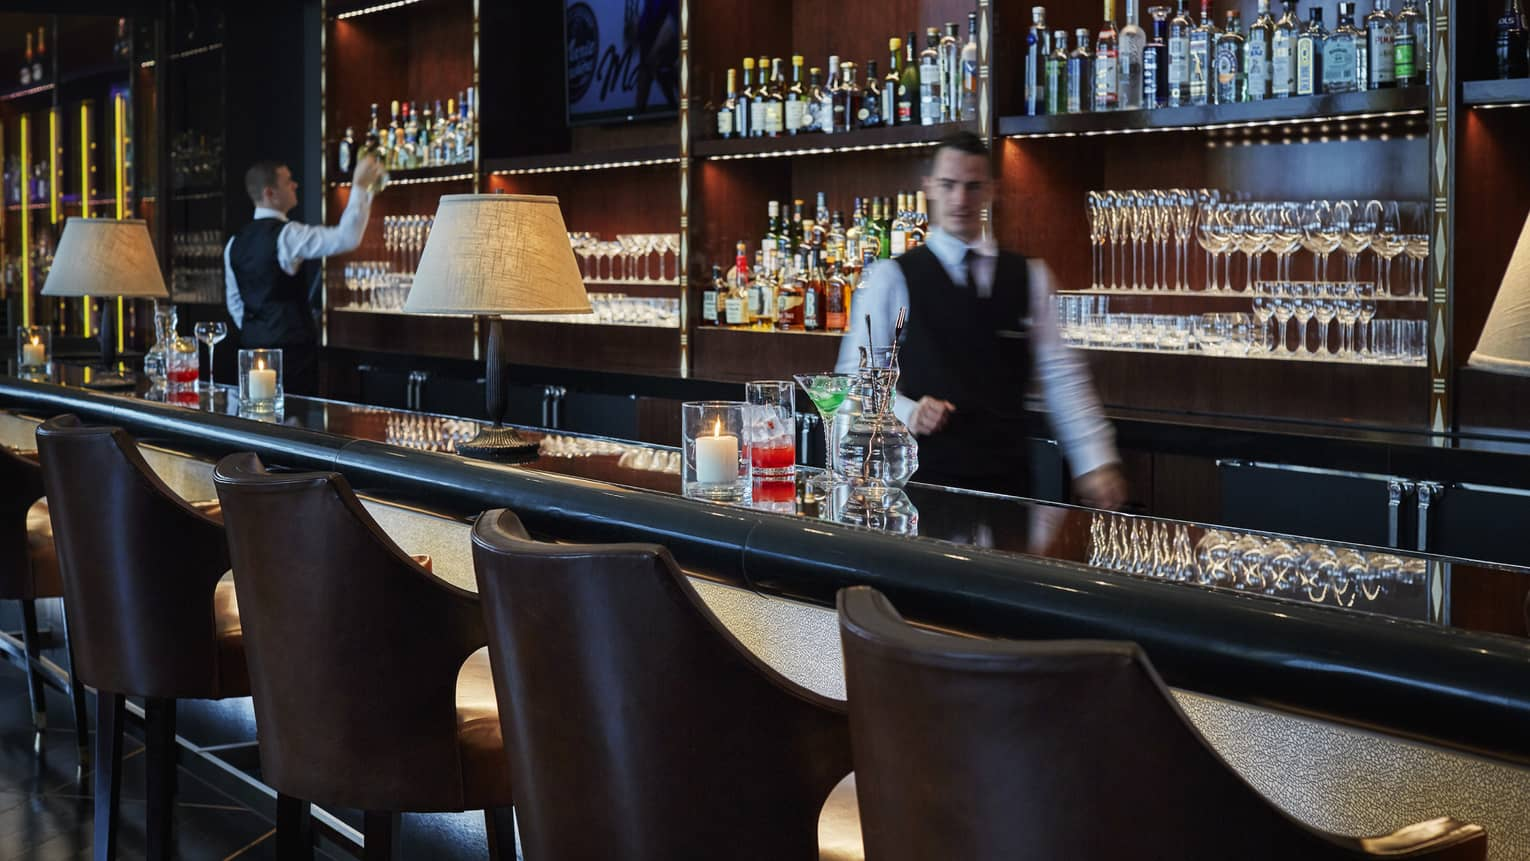 Bartender in black vest, white shirt, walks behind dimly-lit bar lined with leather bucket stools